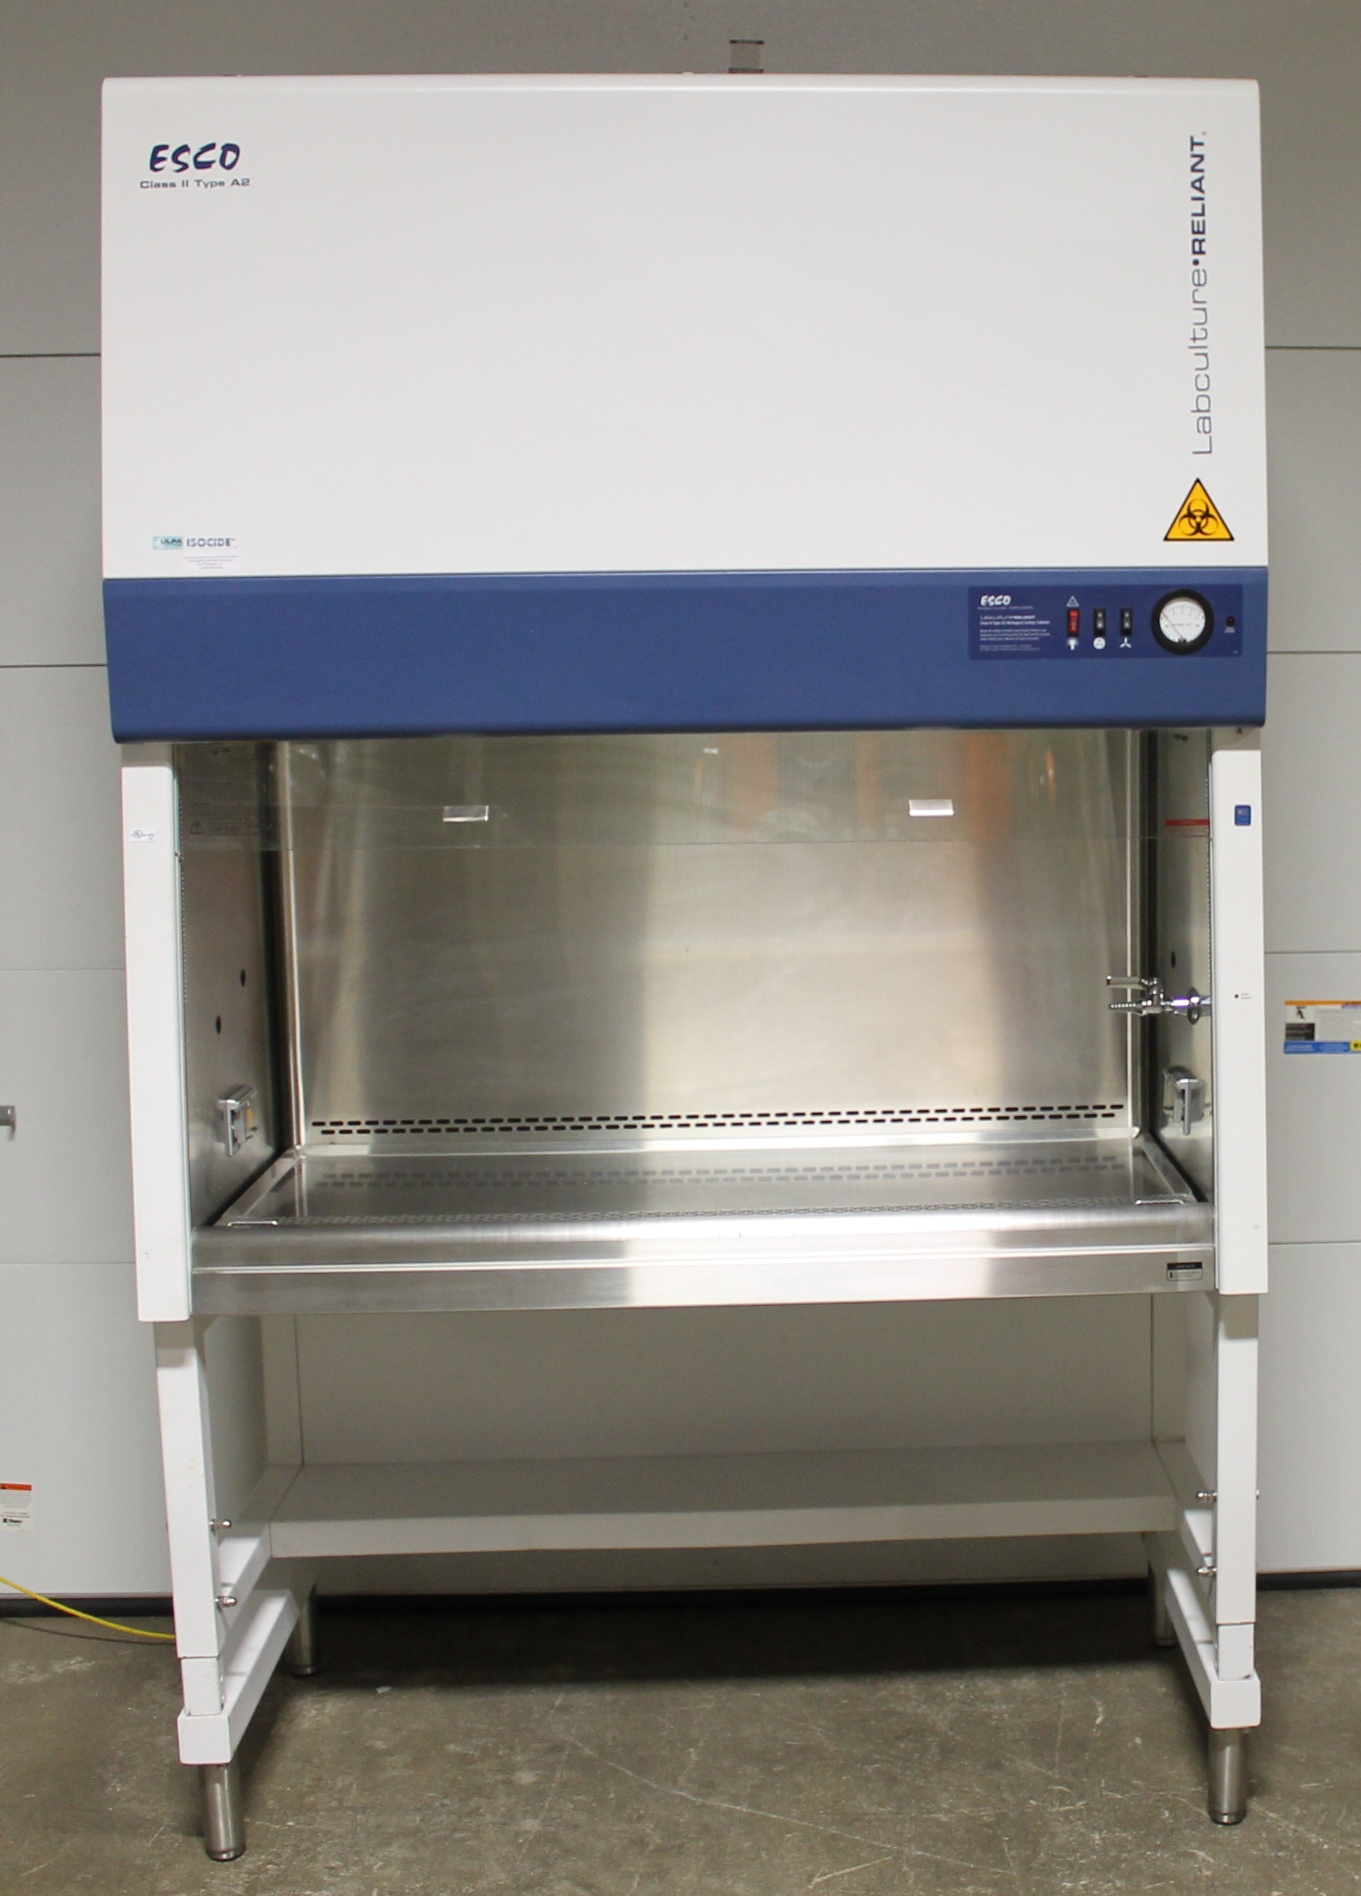 ESCO 4u0027 Labculture Reliant Class II, Type A2 Biological Safety Cabinet  LR 4S2